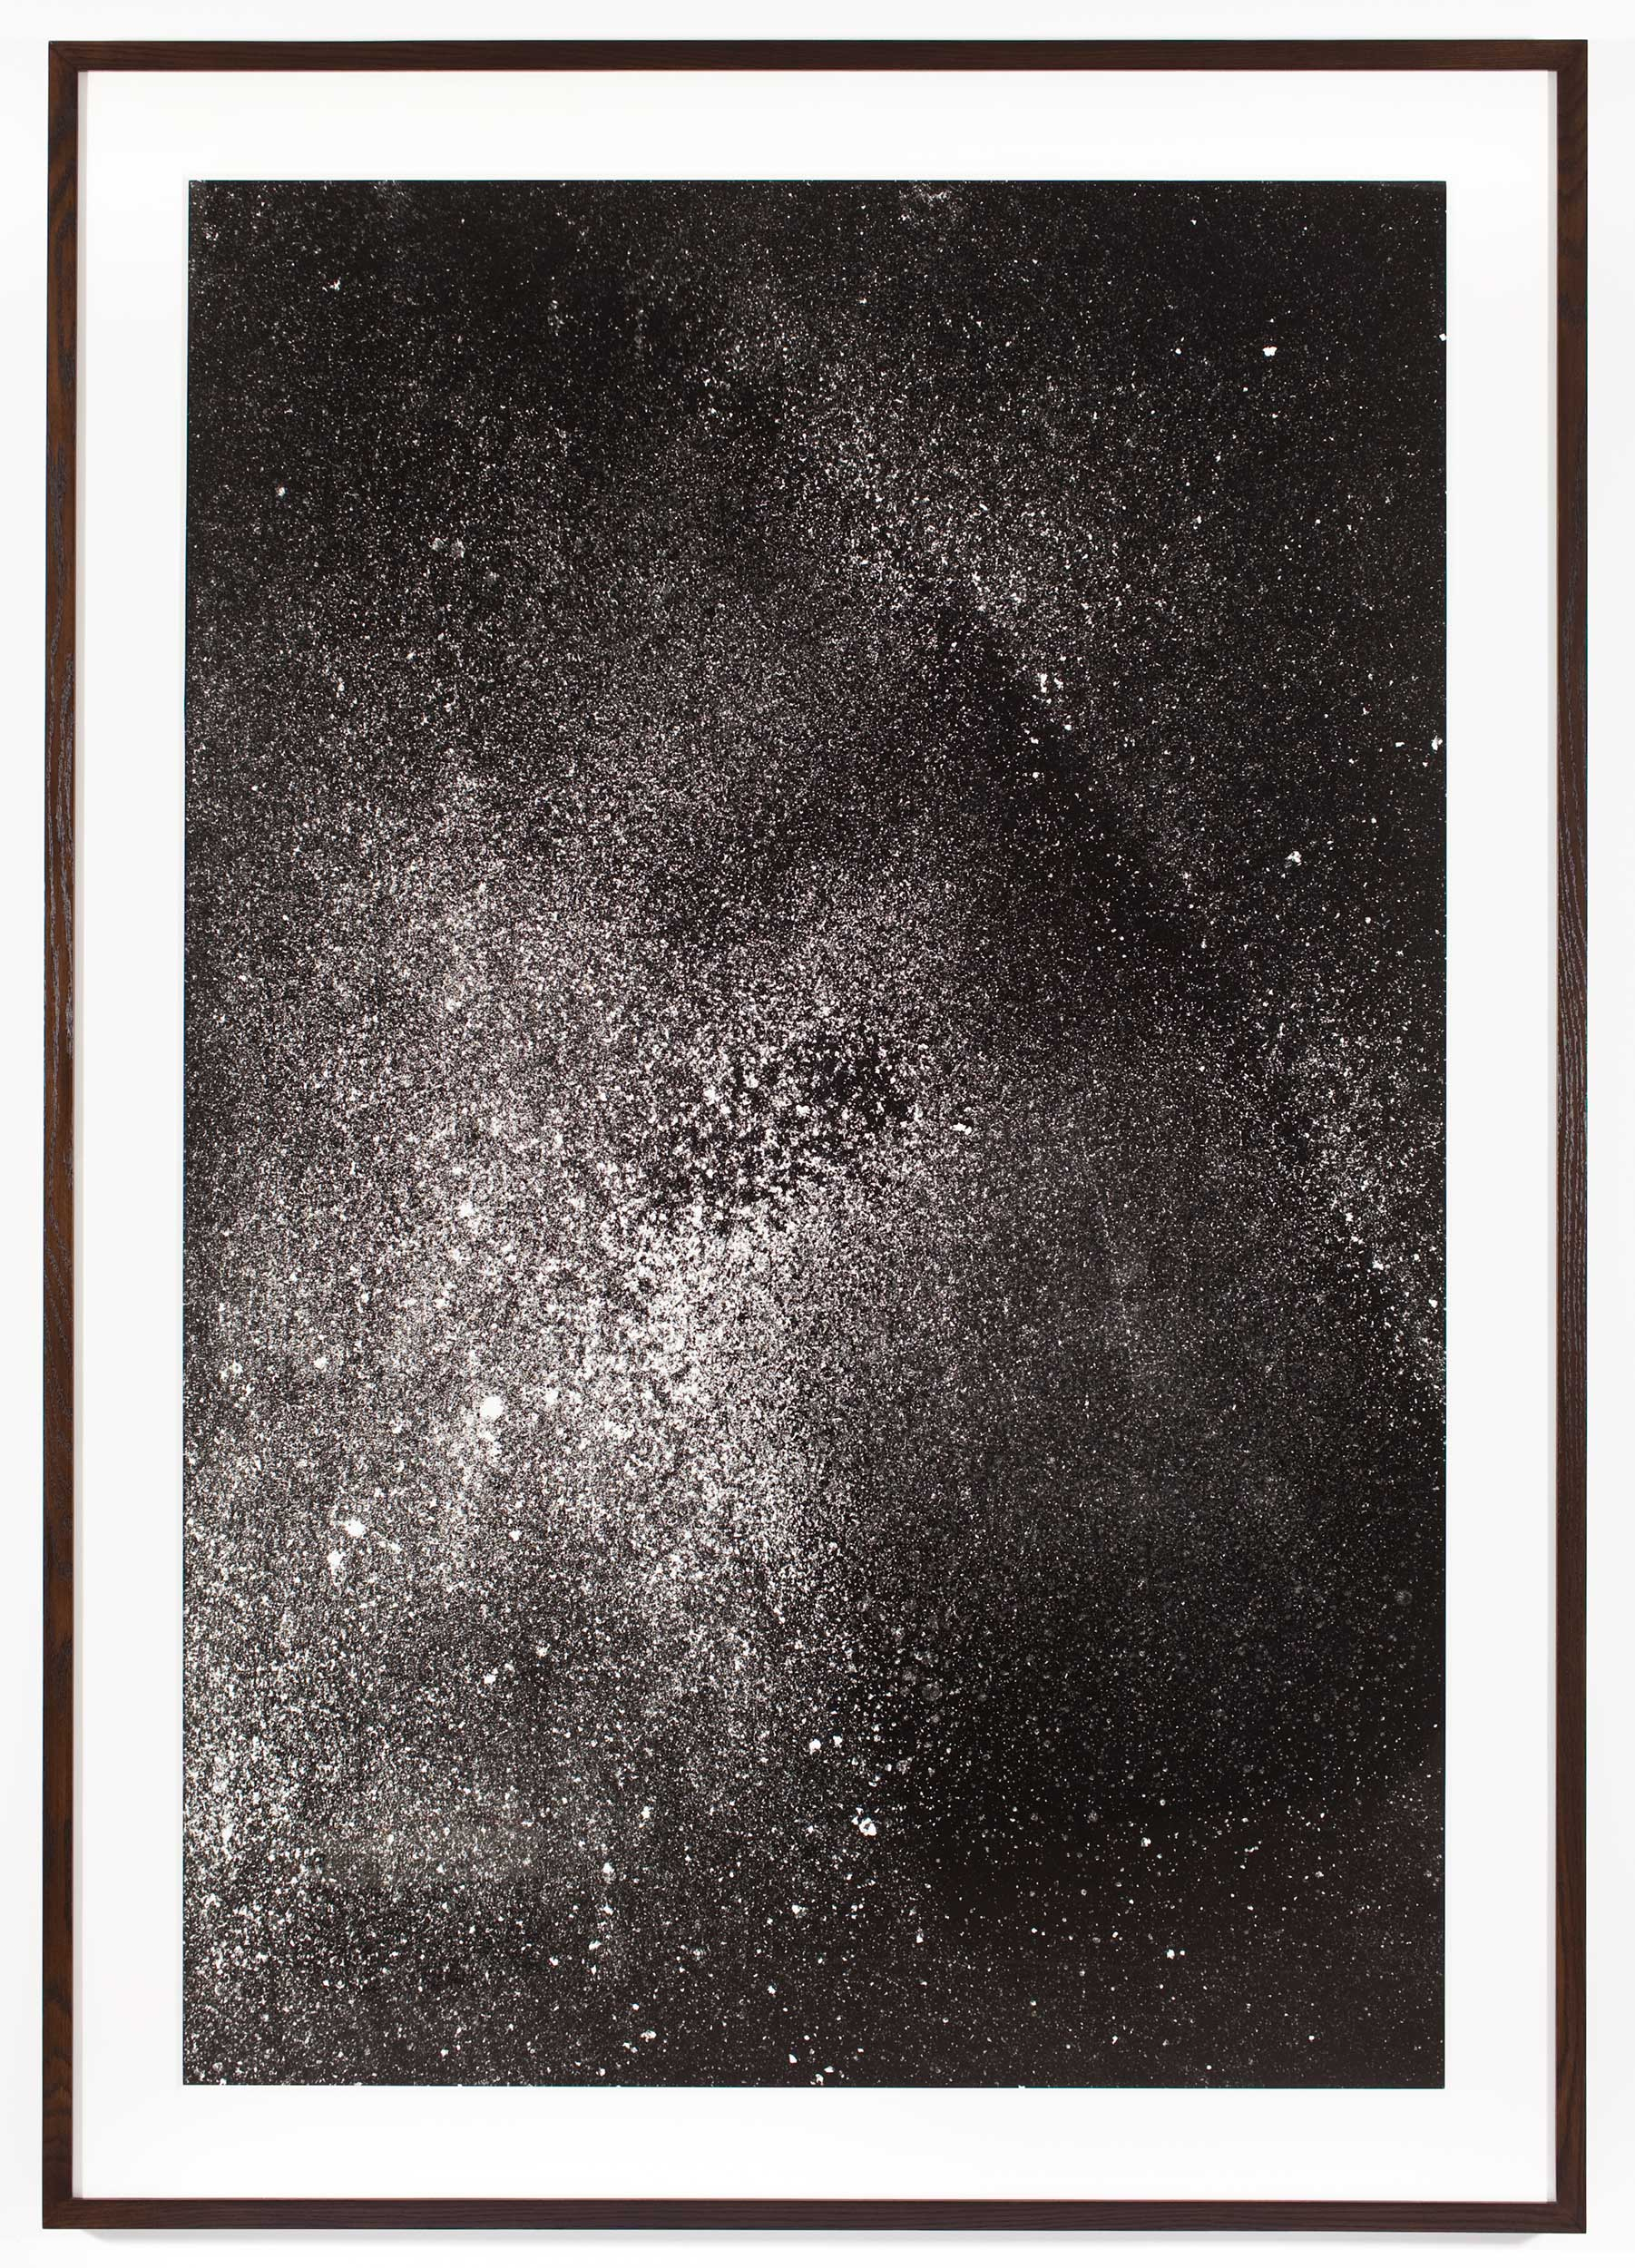 Dust (2007)    2007   Chromogenic print  87 x 55 inches